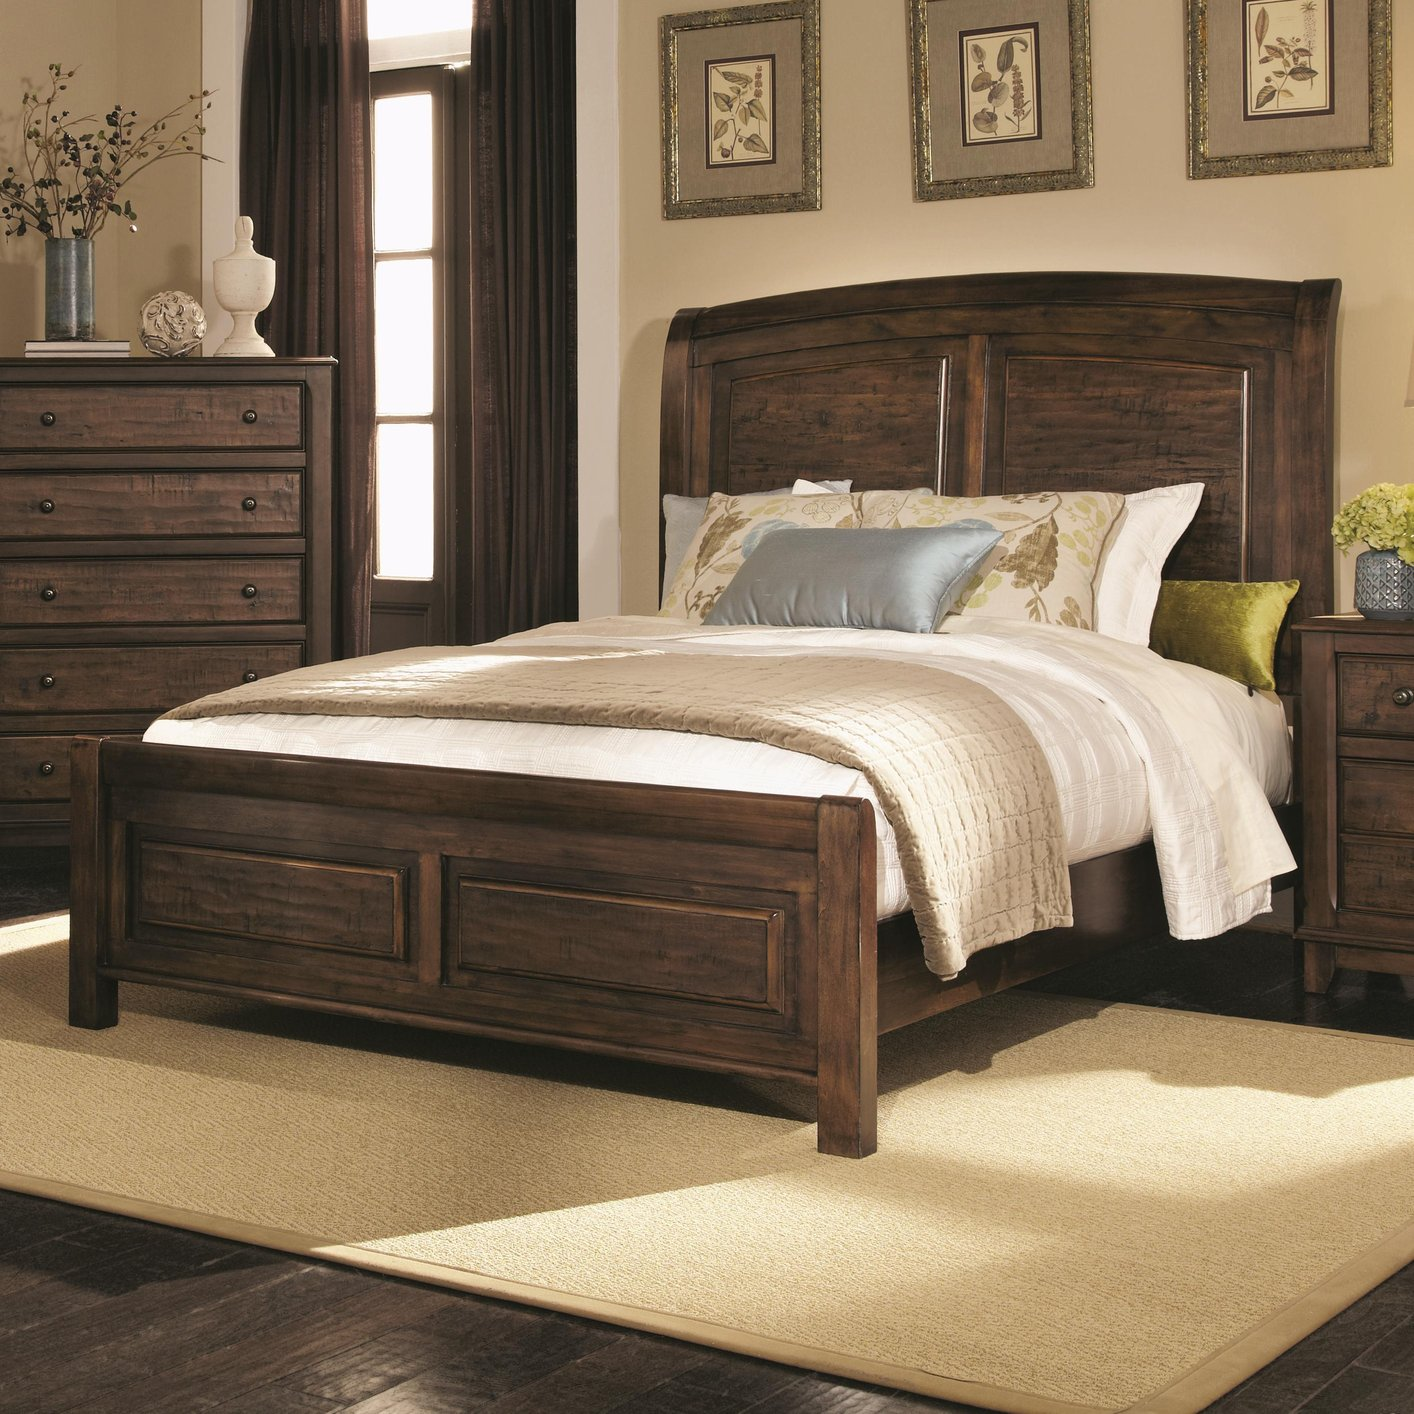 coaster 203260q brown queen size wood bed steal a sofa furniture outlet los angeles ca. Black Bedroom Furniture Sets. Home Design Ideas